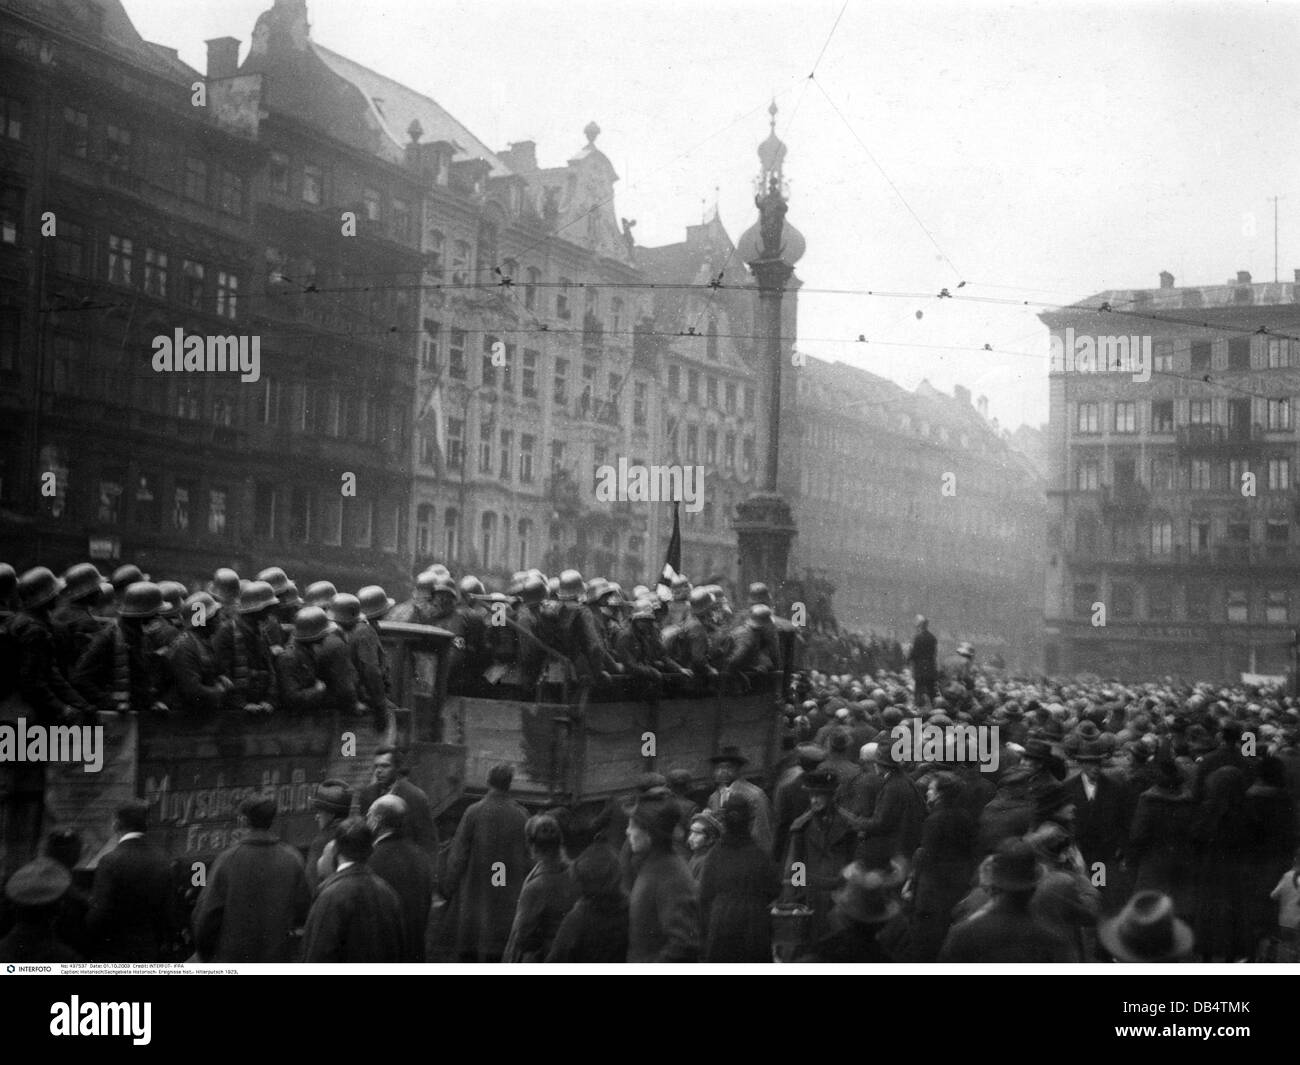 Beer Hall Putsch 1923, putschists in lorry at Marienplatz, occupation of the town hall, Munich, Germany, 9.11.1923, Stock Photo